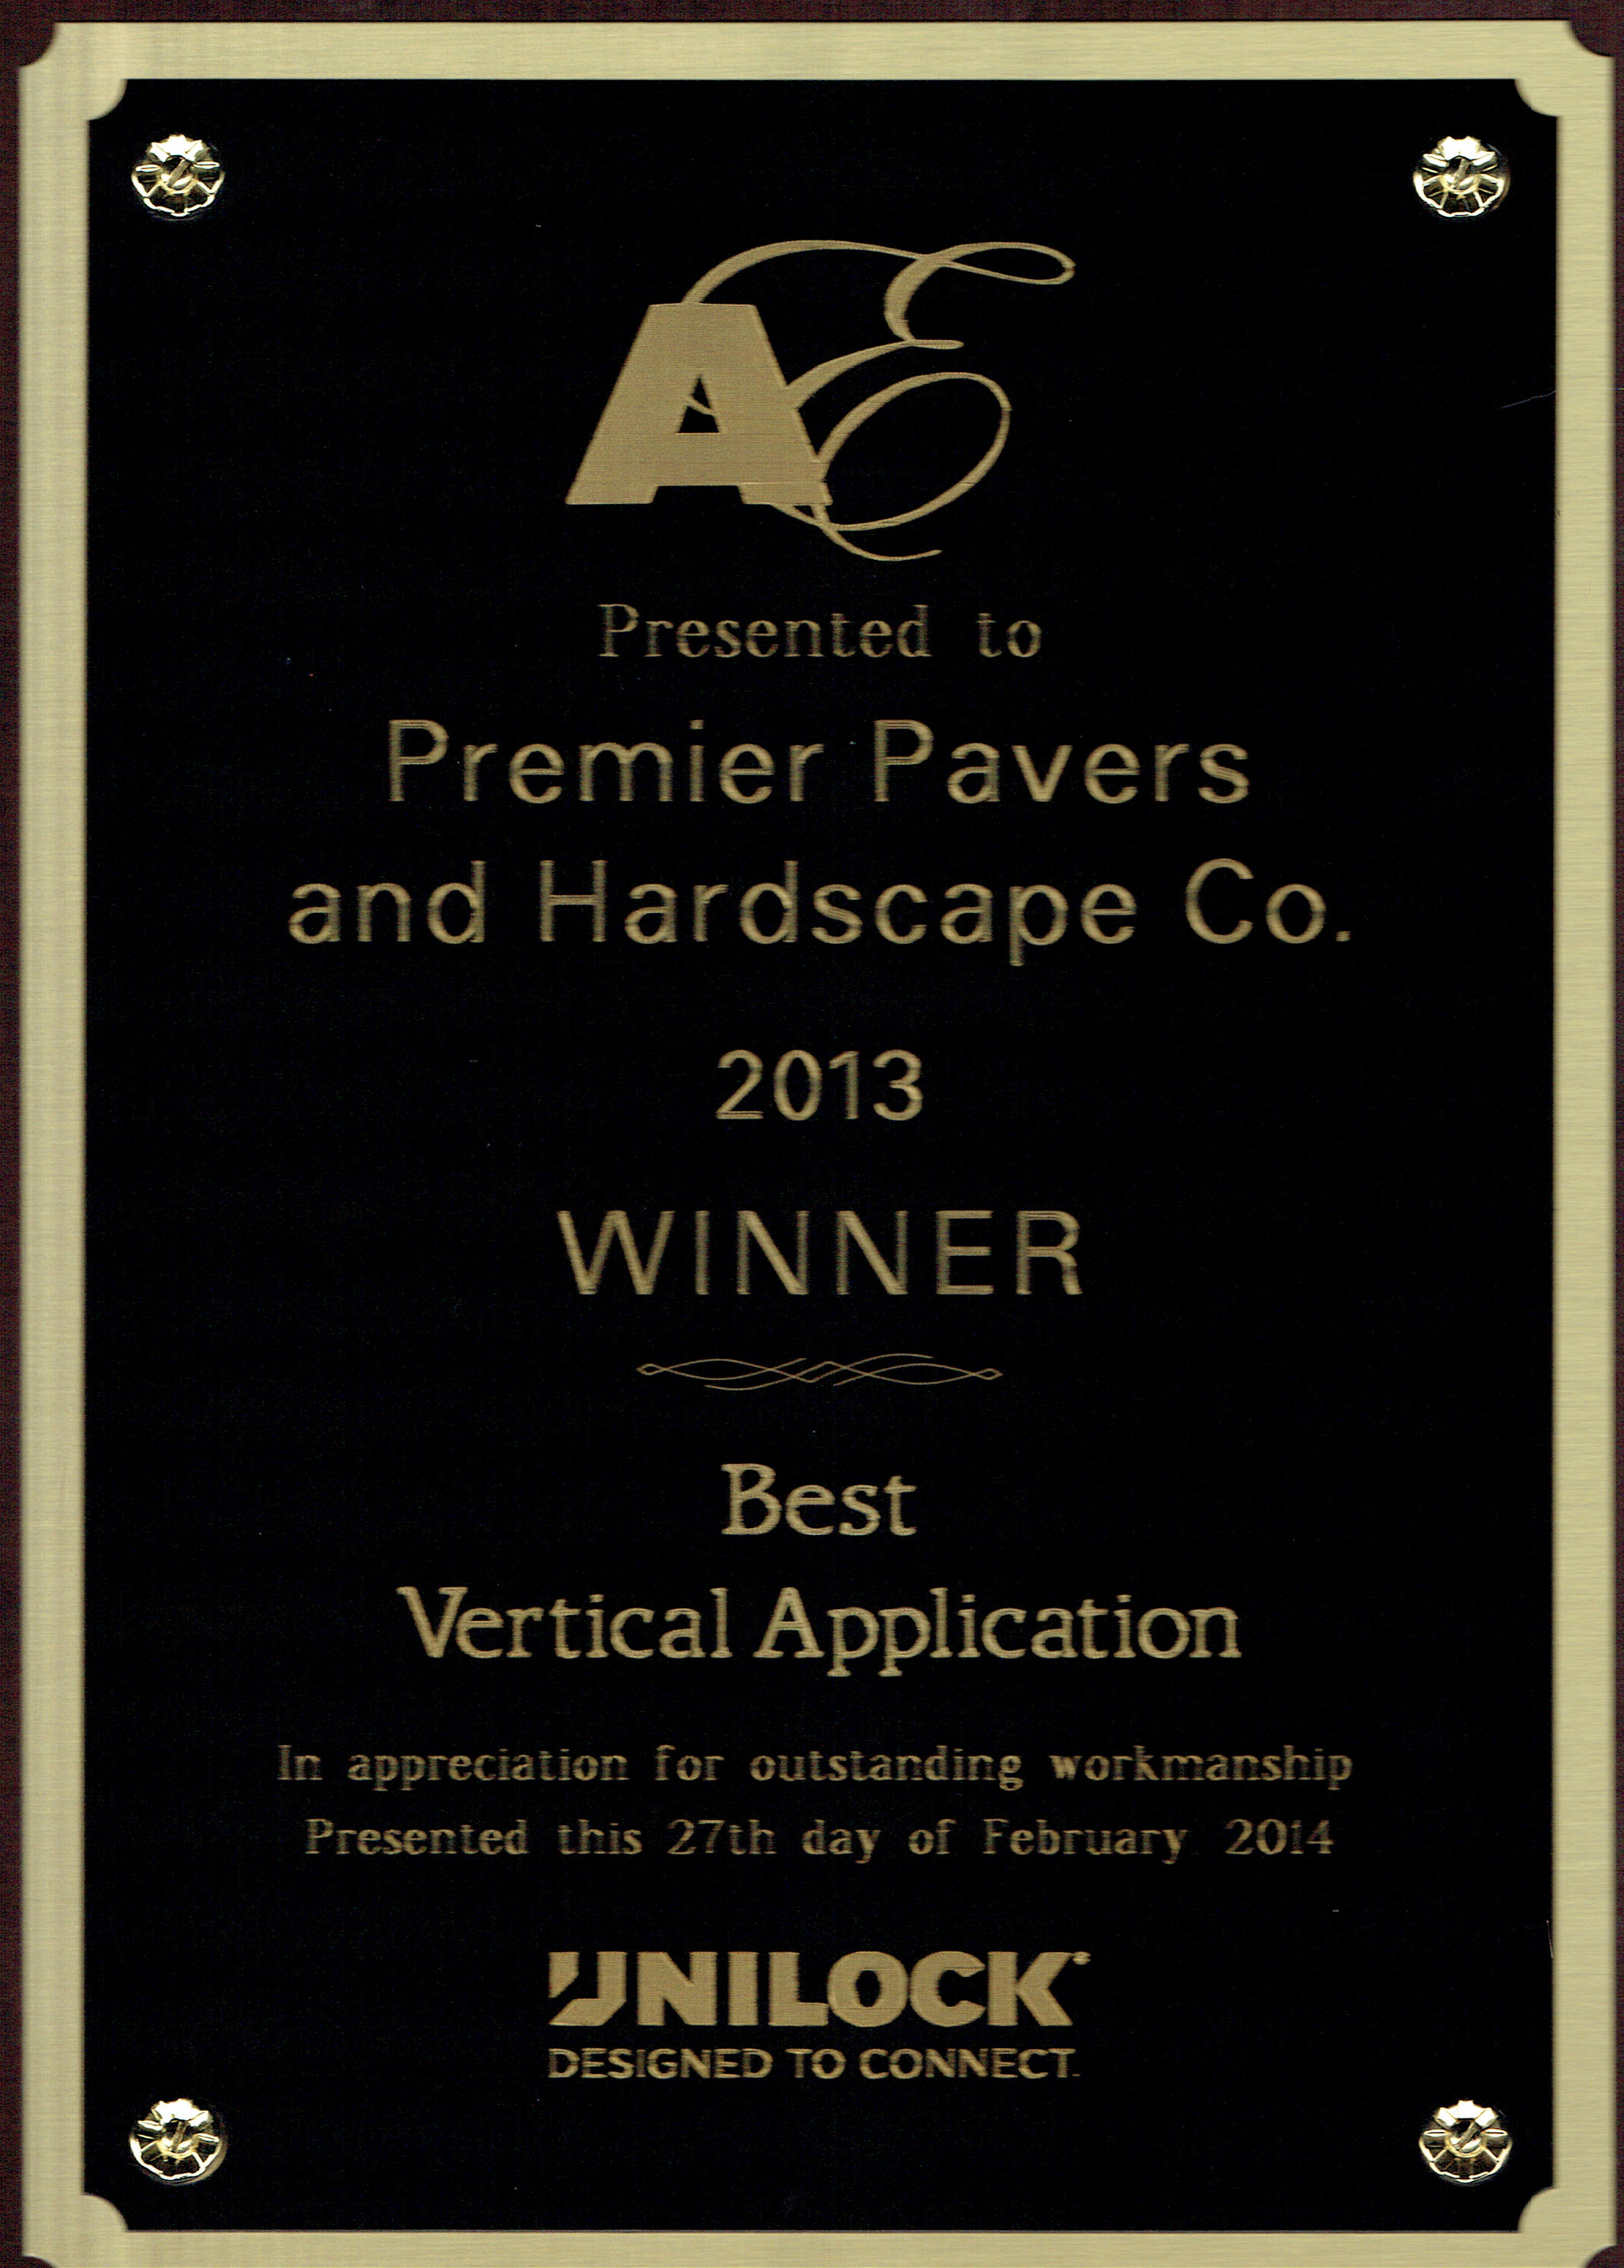 Brookline MA landscapers near me with Unilock award for best vertical application.